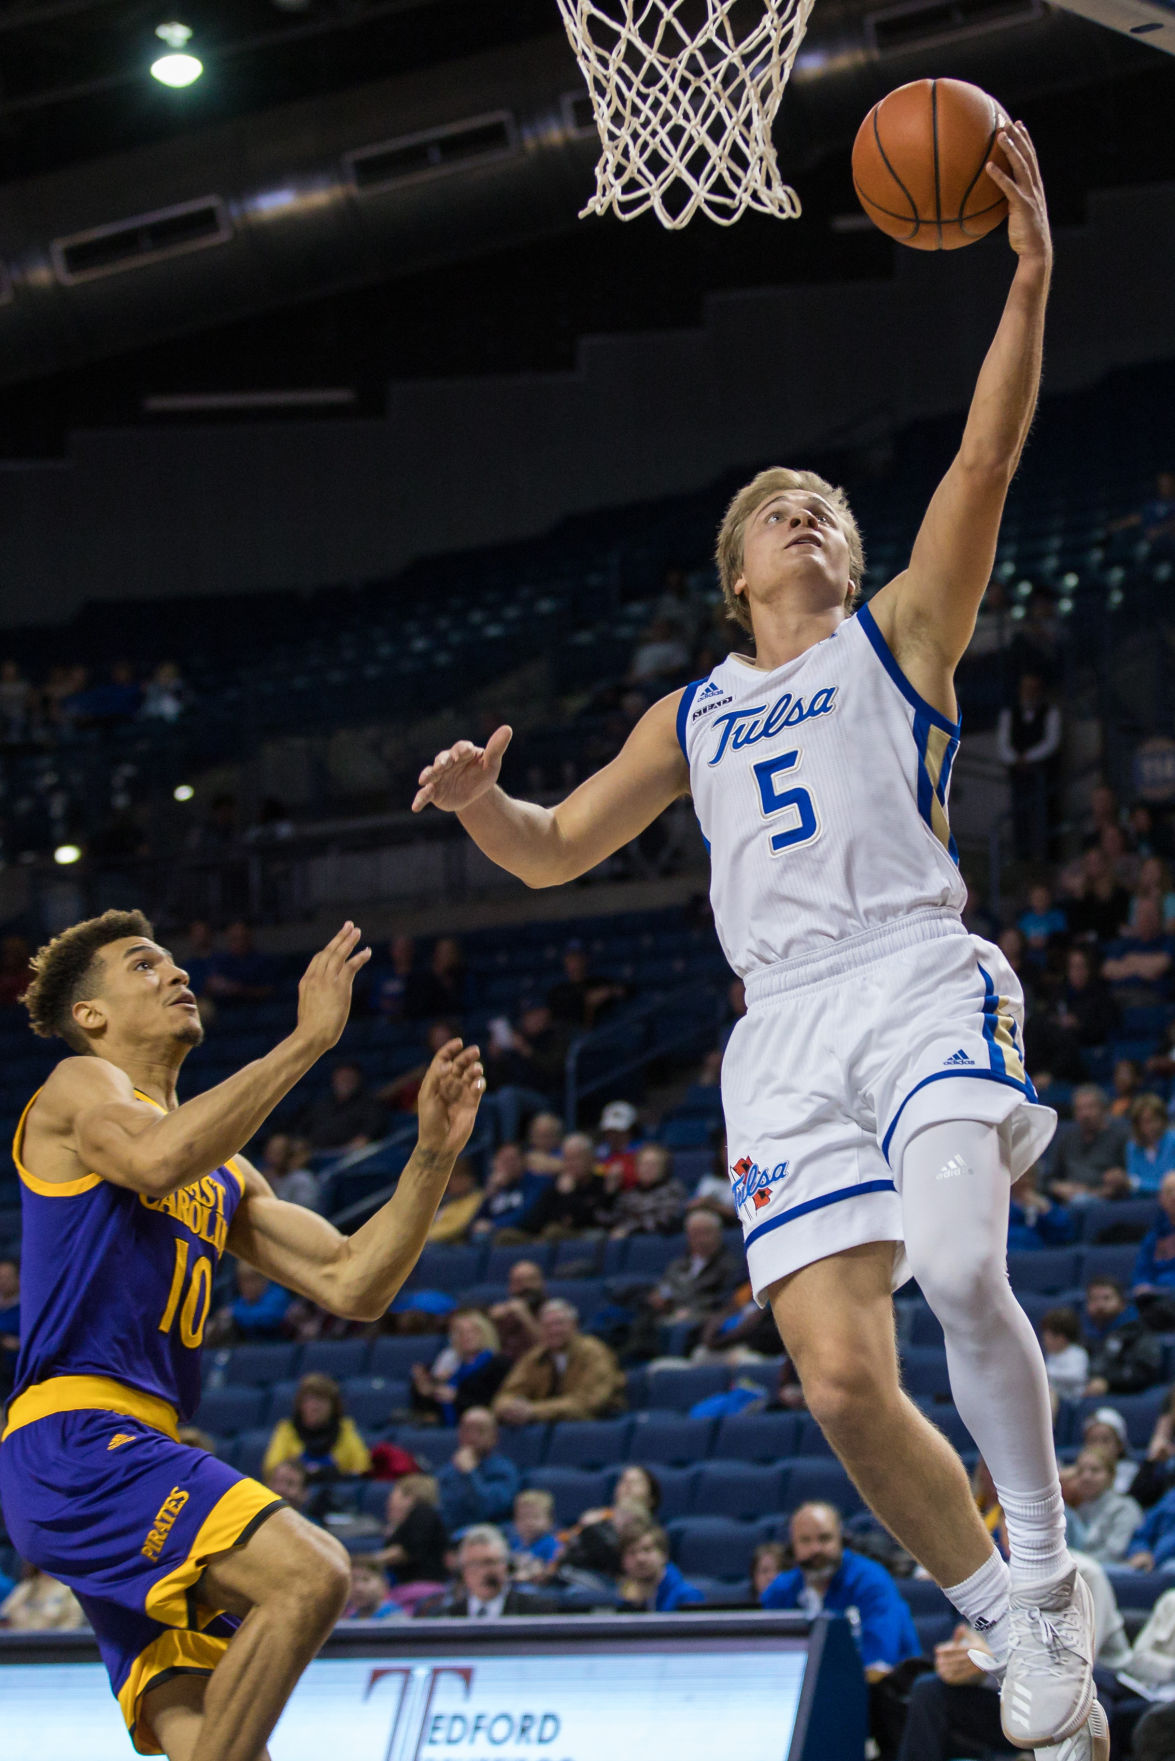 TU pulls away in second half, routs East Carolina 79-53 in AAC opener | TU Sports Extra ...